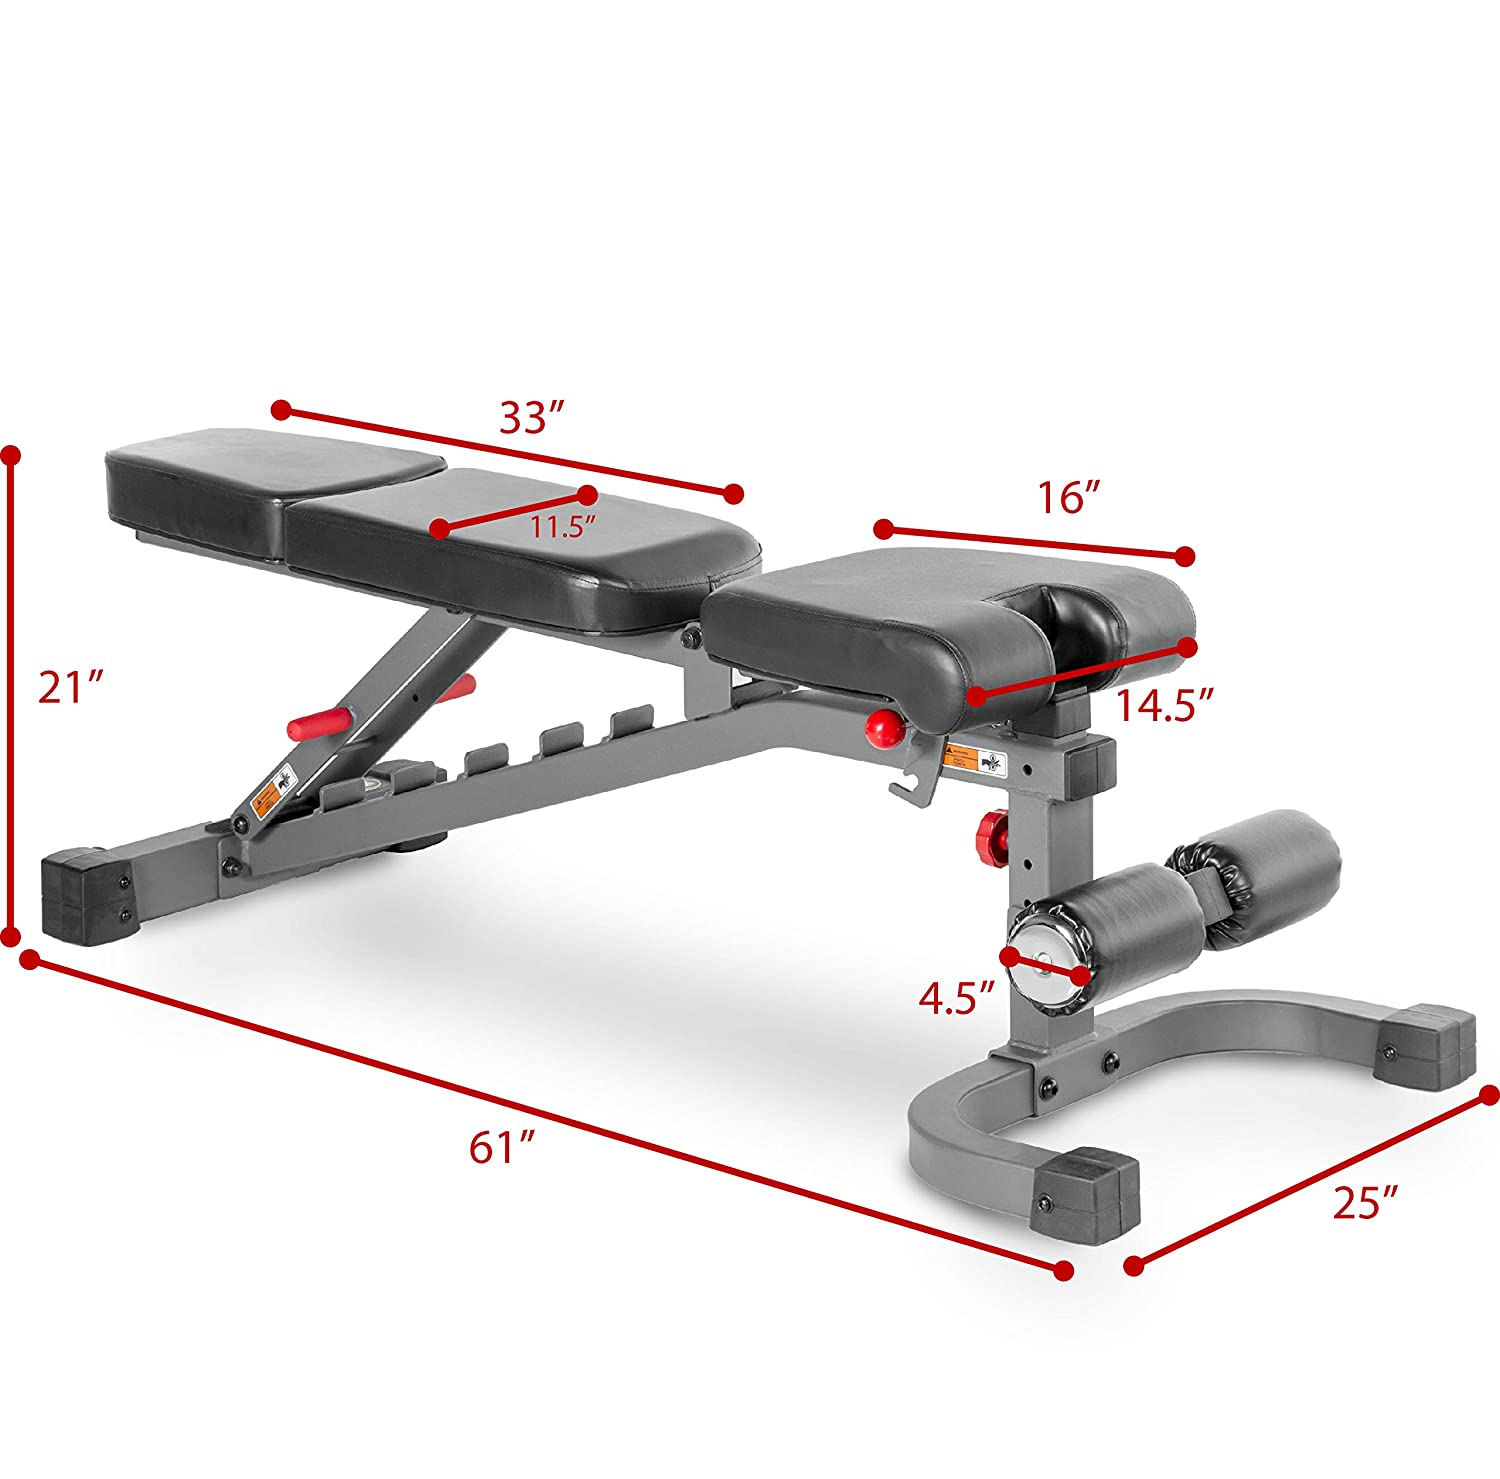 XMark Adjustable Weight Bench with Flat and Adjustable Leg Holder 7 Positions and Decline Adjustments to Full Decline for Military Press Incline 3-Position Seat 11-Gauge Steel Mainframe